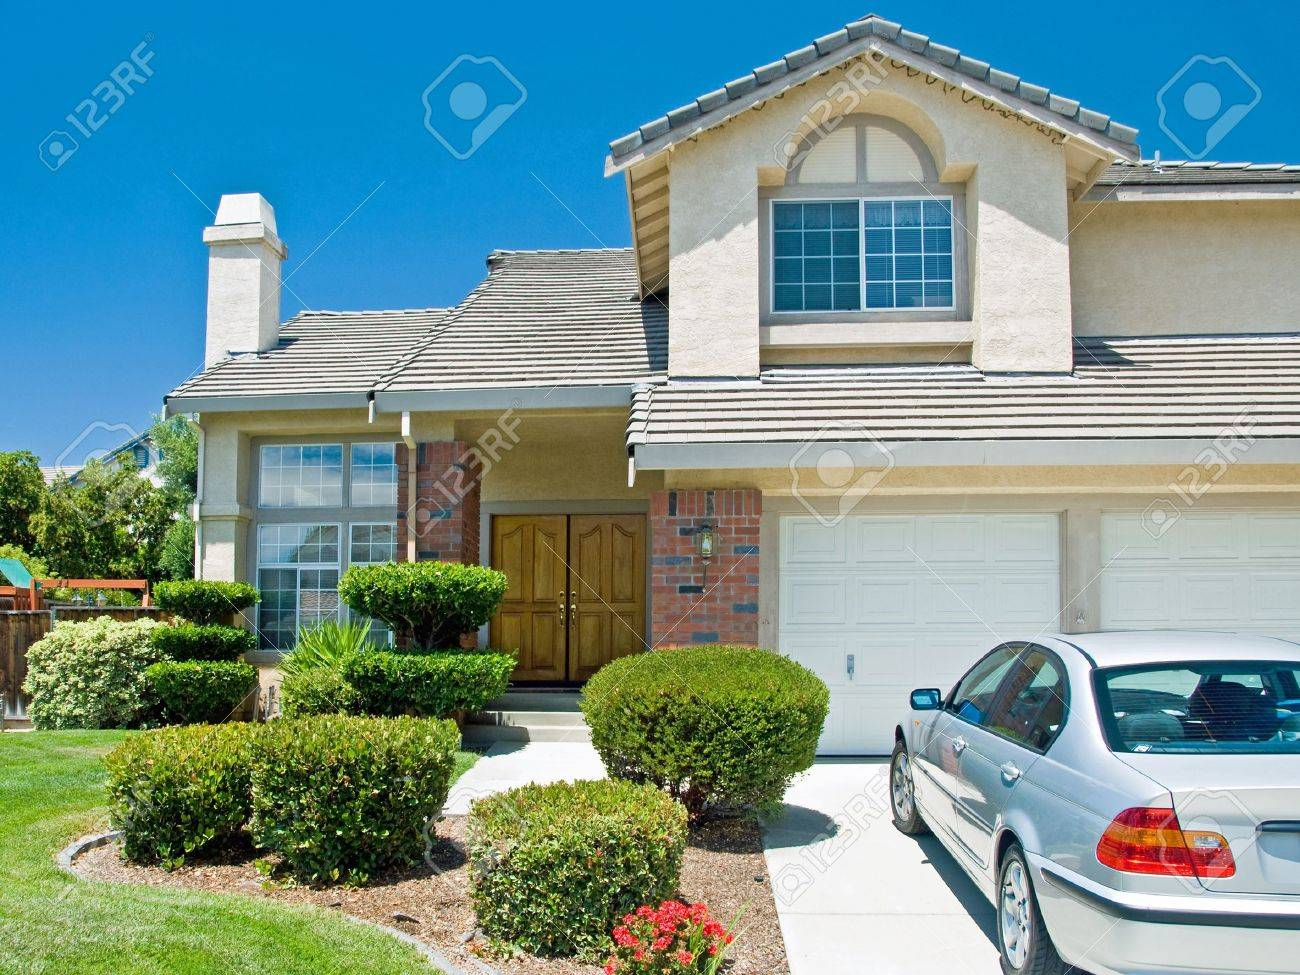 New American dream home with a beautiful blue sky in background and brand new car parked outside. Stock Photo - 18509649